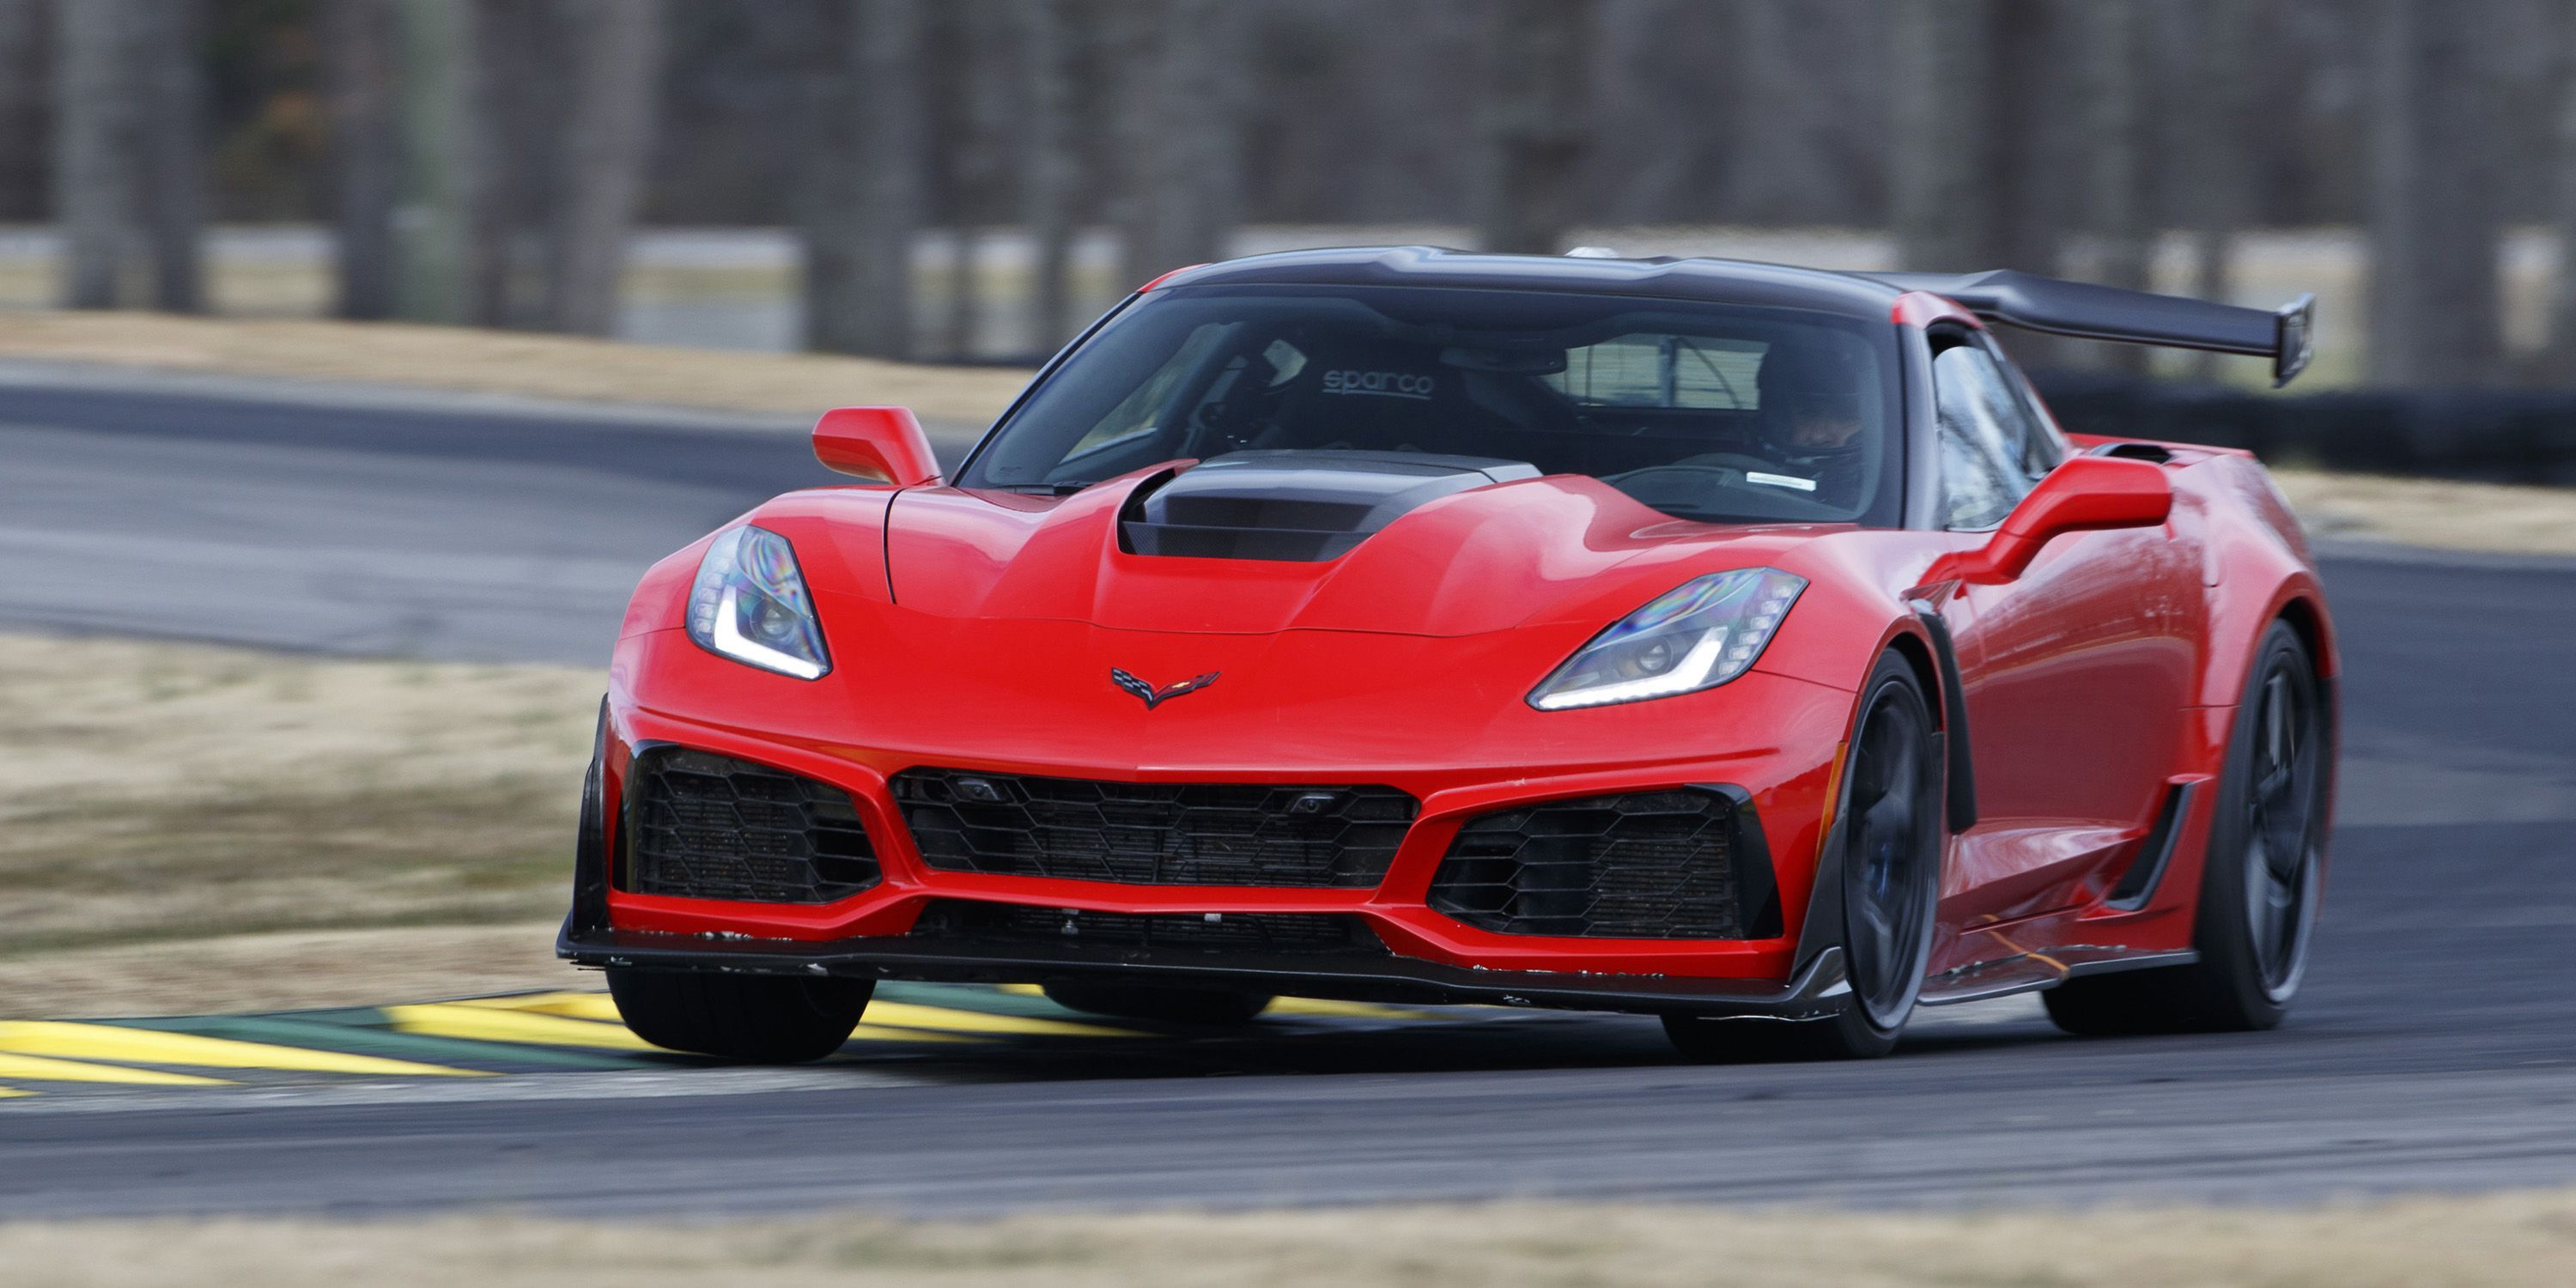 2019 Corvette Zr1 Does 0 60 In 2 85 Seconds Hits 100 In Six Seconds